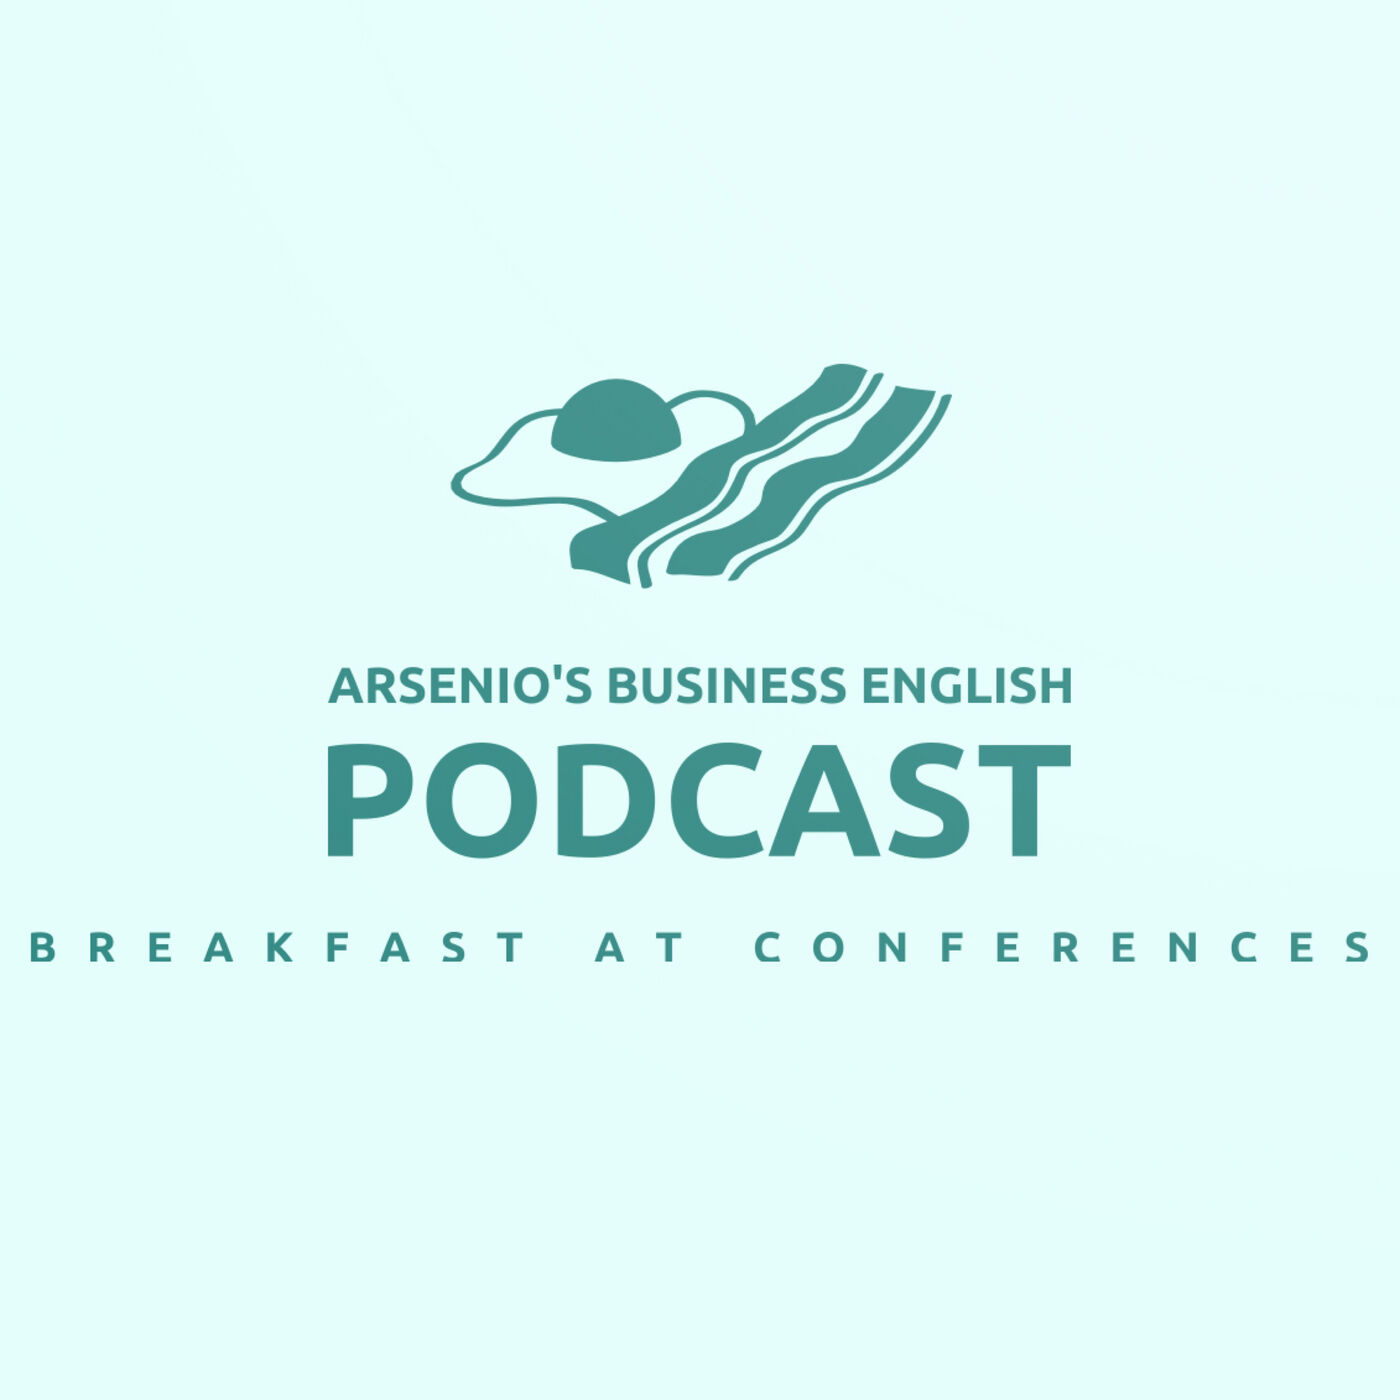 Arsenio's Business English Podcast | Season 6: Episode 12 | Conference Breakfast & Importance